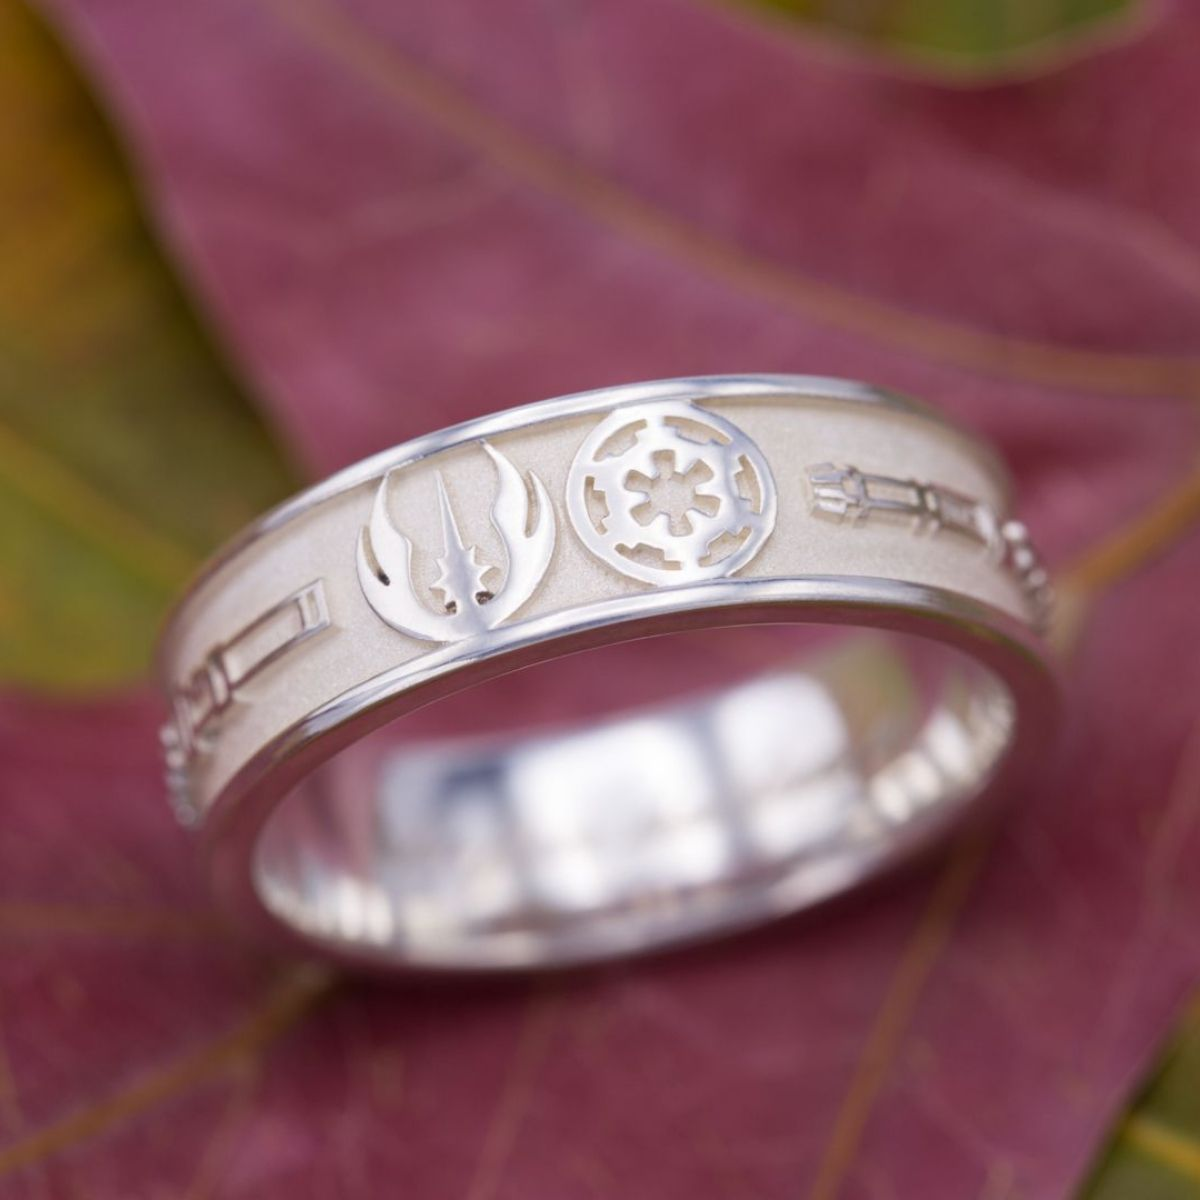 insignety gold rings text white jewellery handwriting meaningful wedding you date love